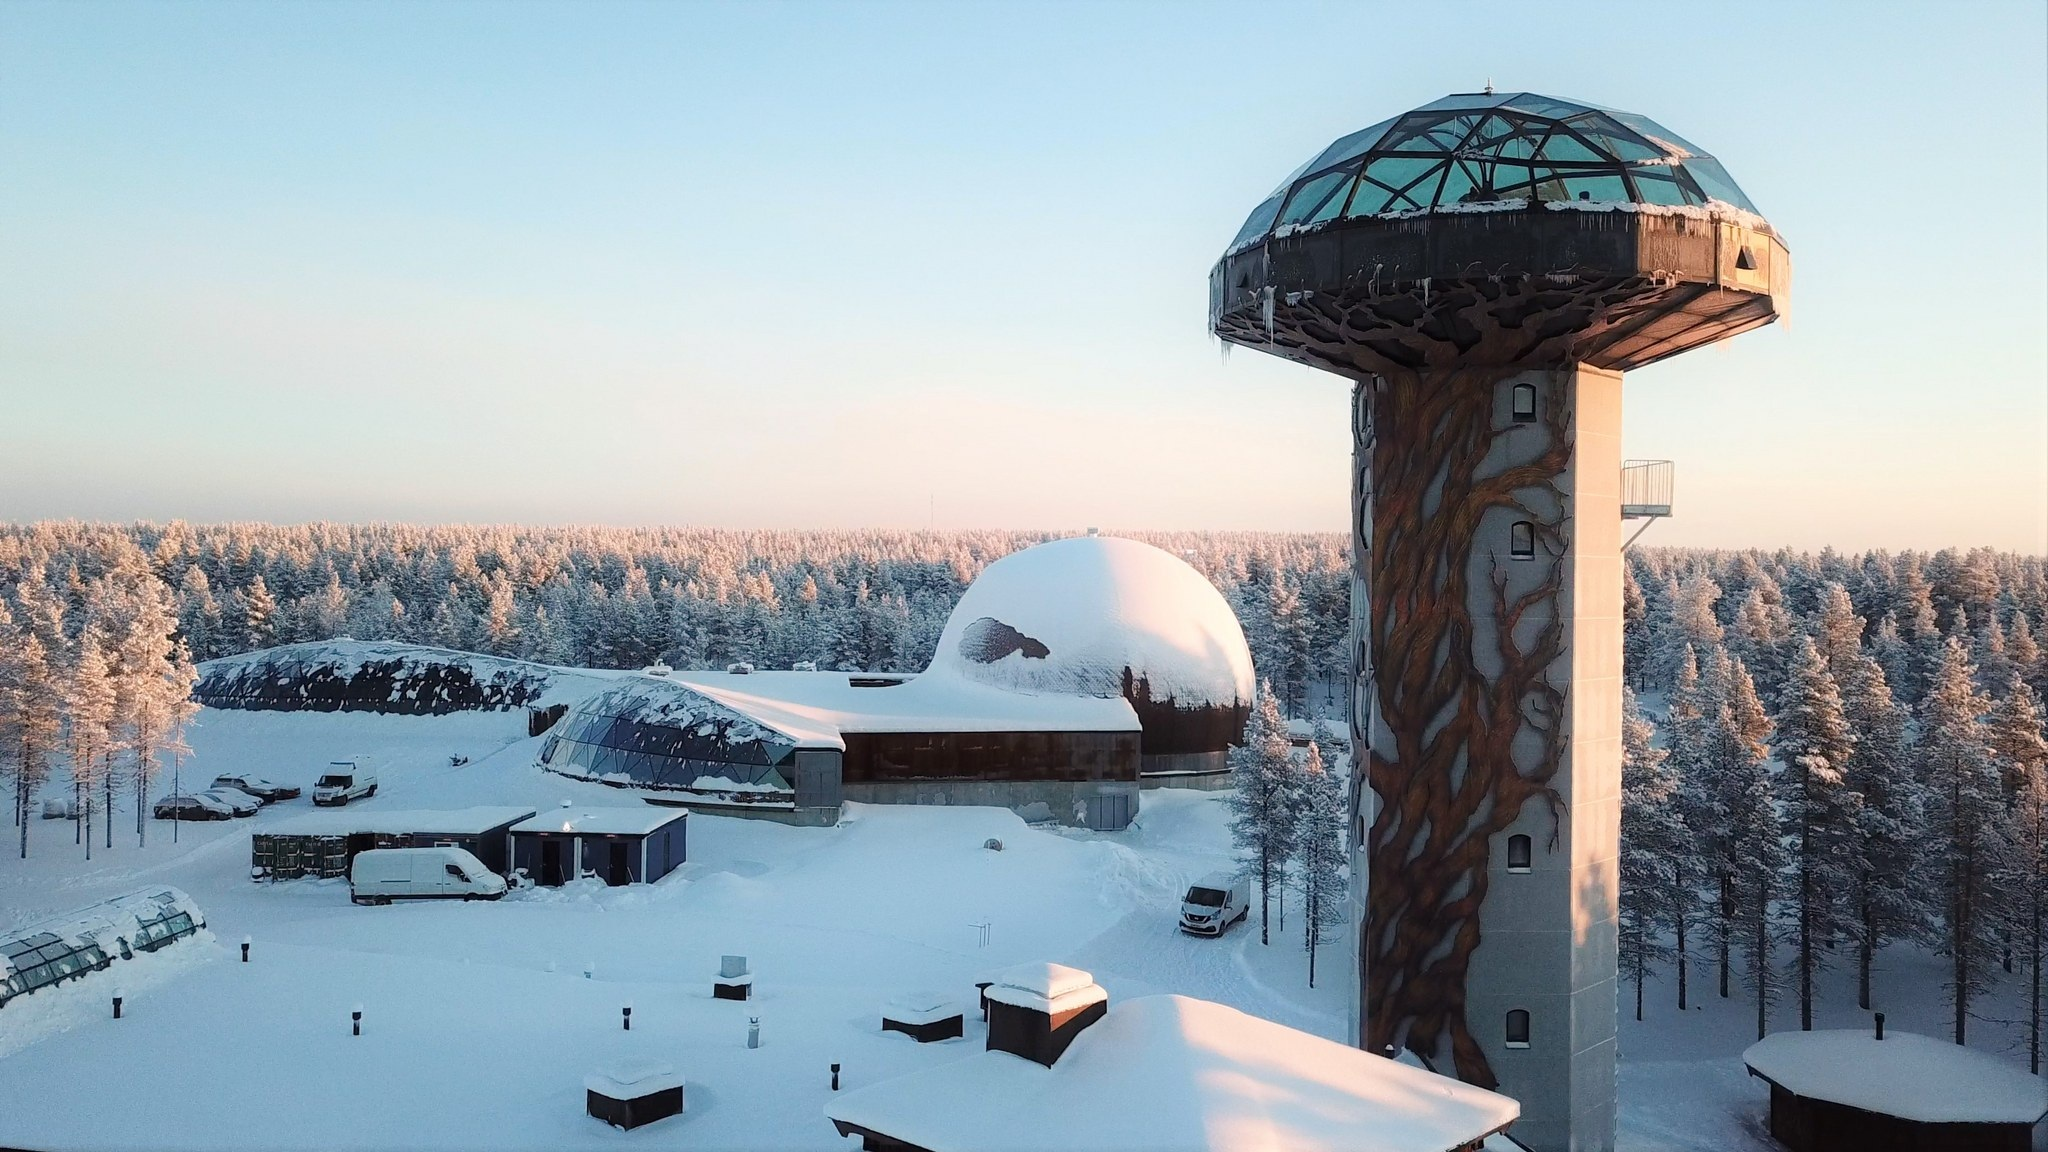 Visit the Kakslauttanen art gallery with a view like no other.